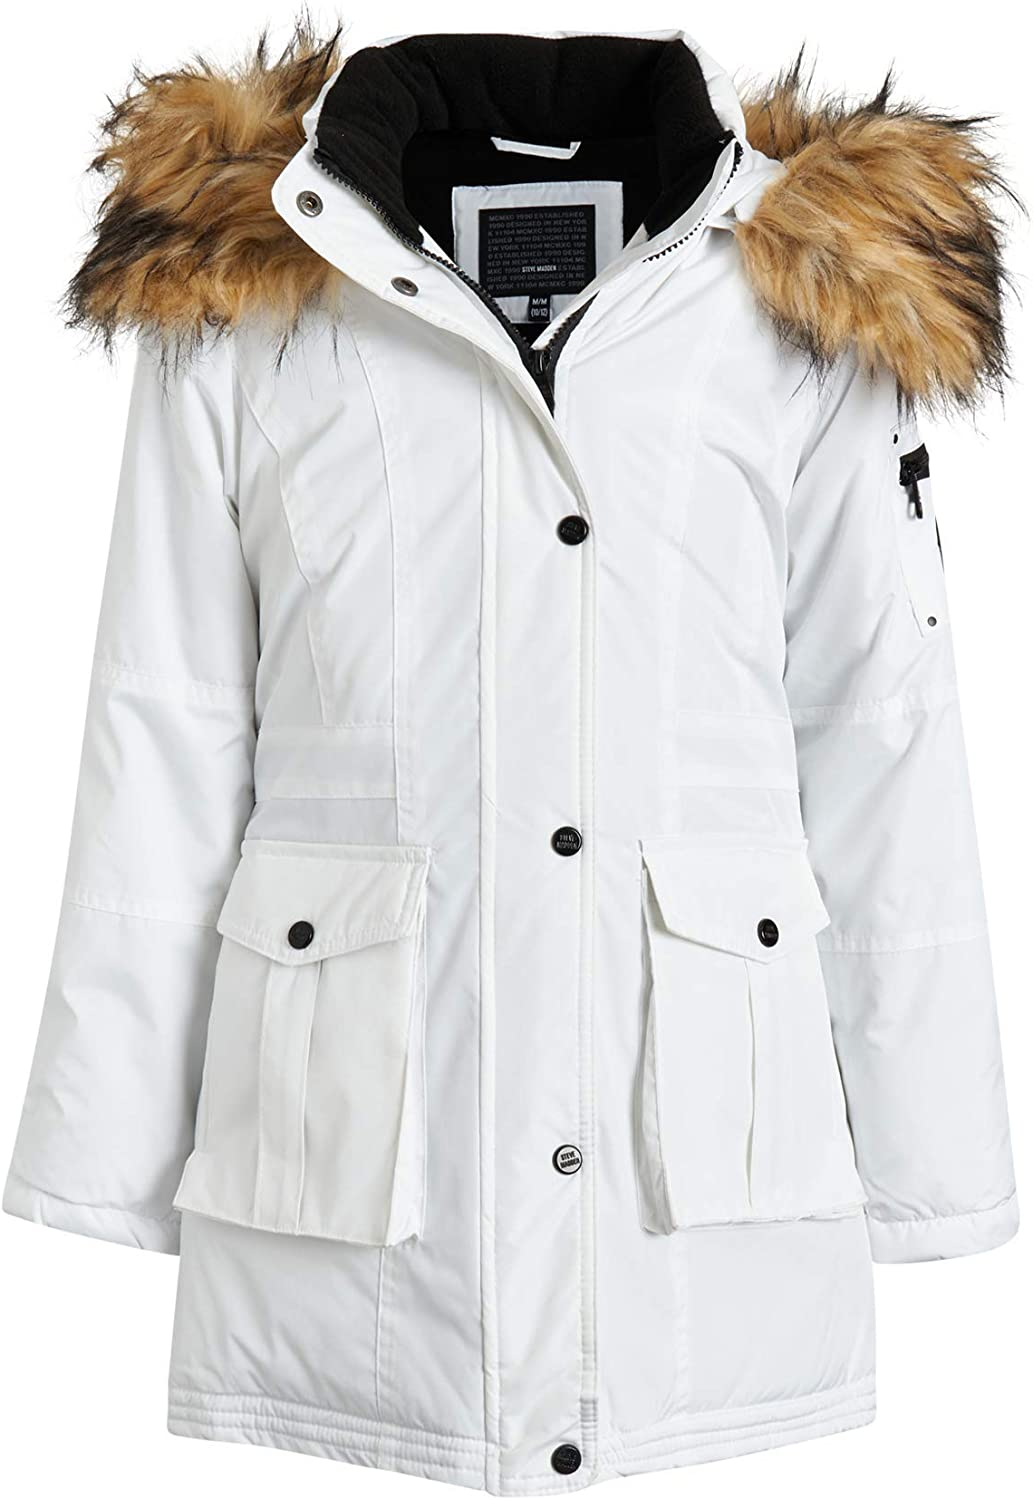 Steve Madden Girls Heavyweight Durable Winter Parka Expedition Jacket with Fur Trimmed Hood